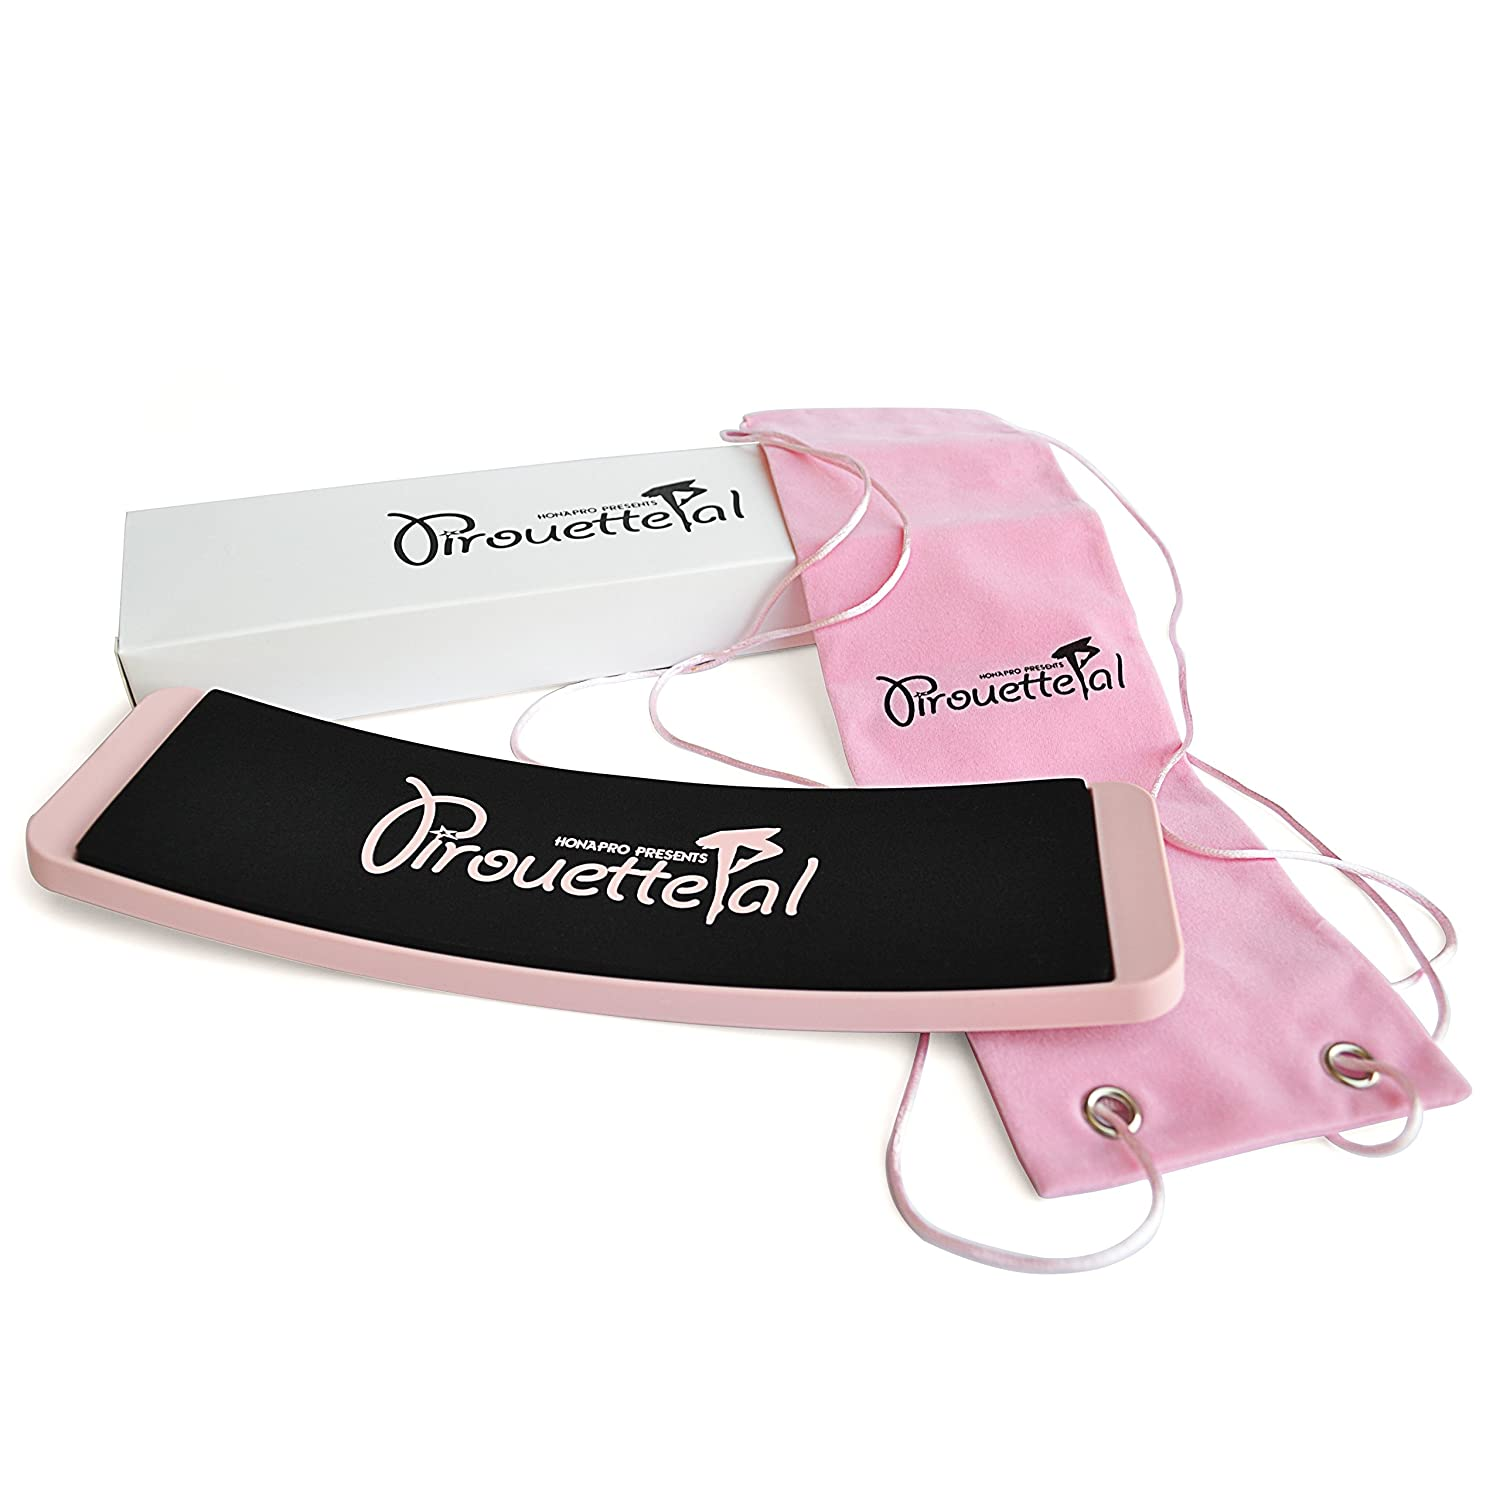 PirouettePal Turn Board - Premium Turning Board and Carry Bag in a Gift Box for Ballet Dancers